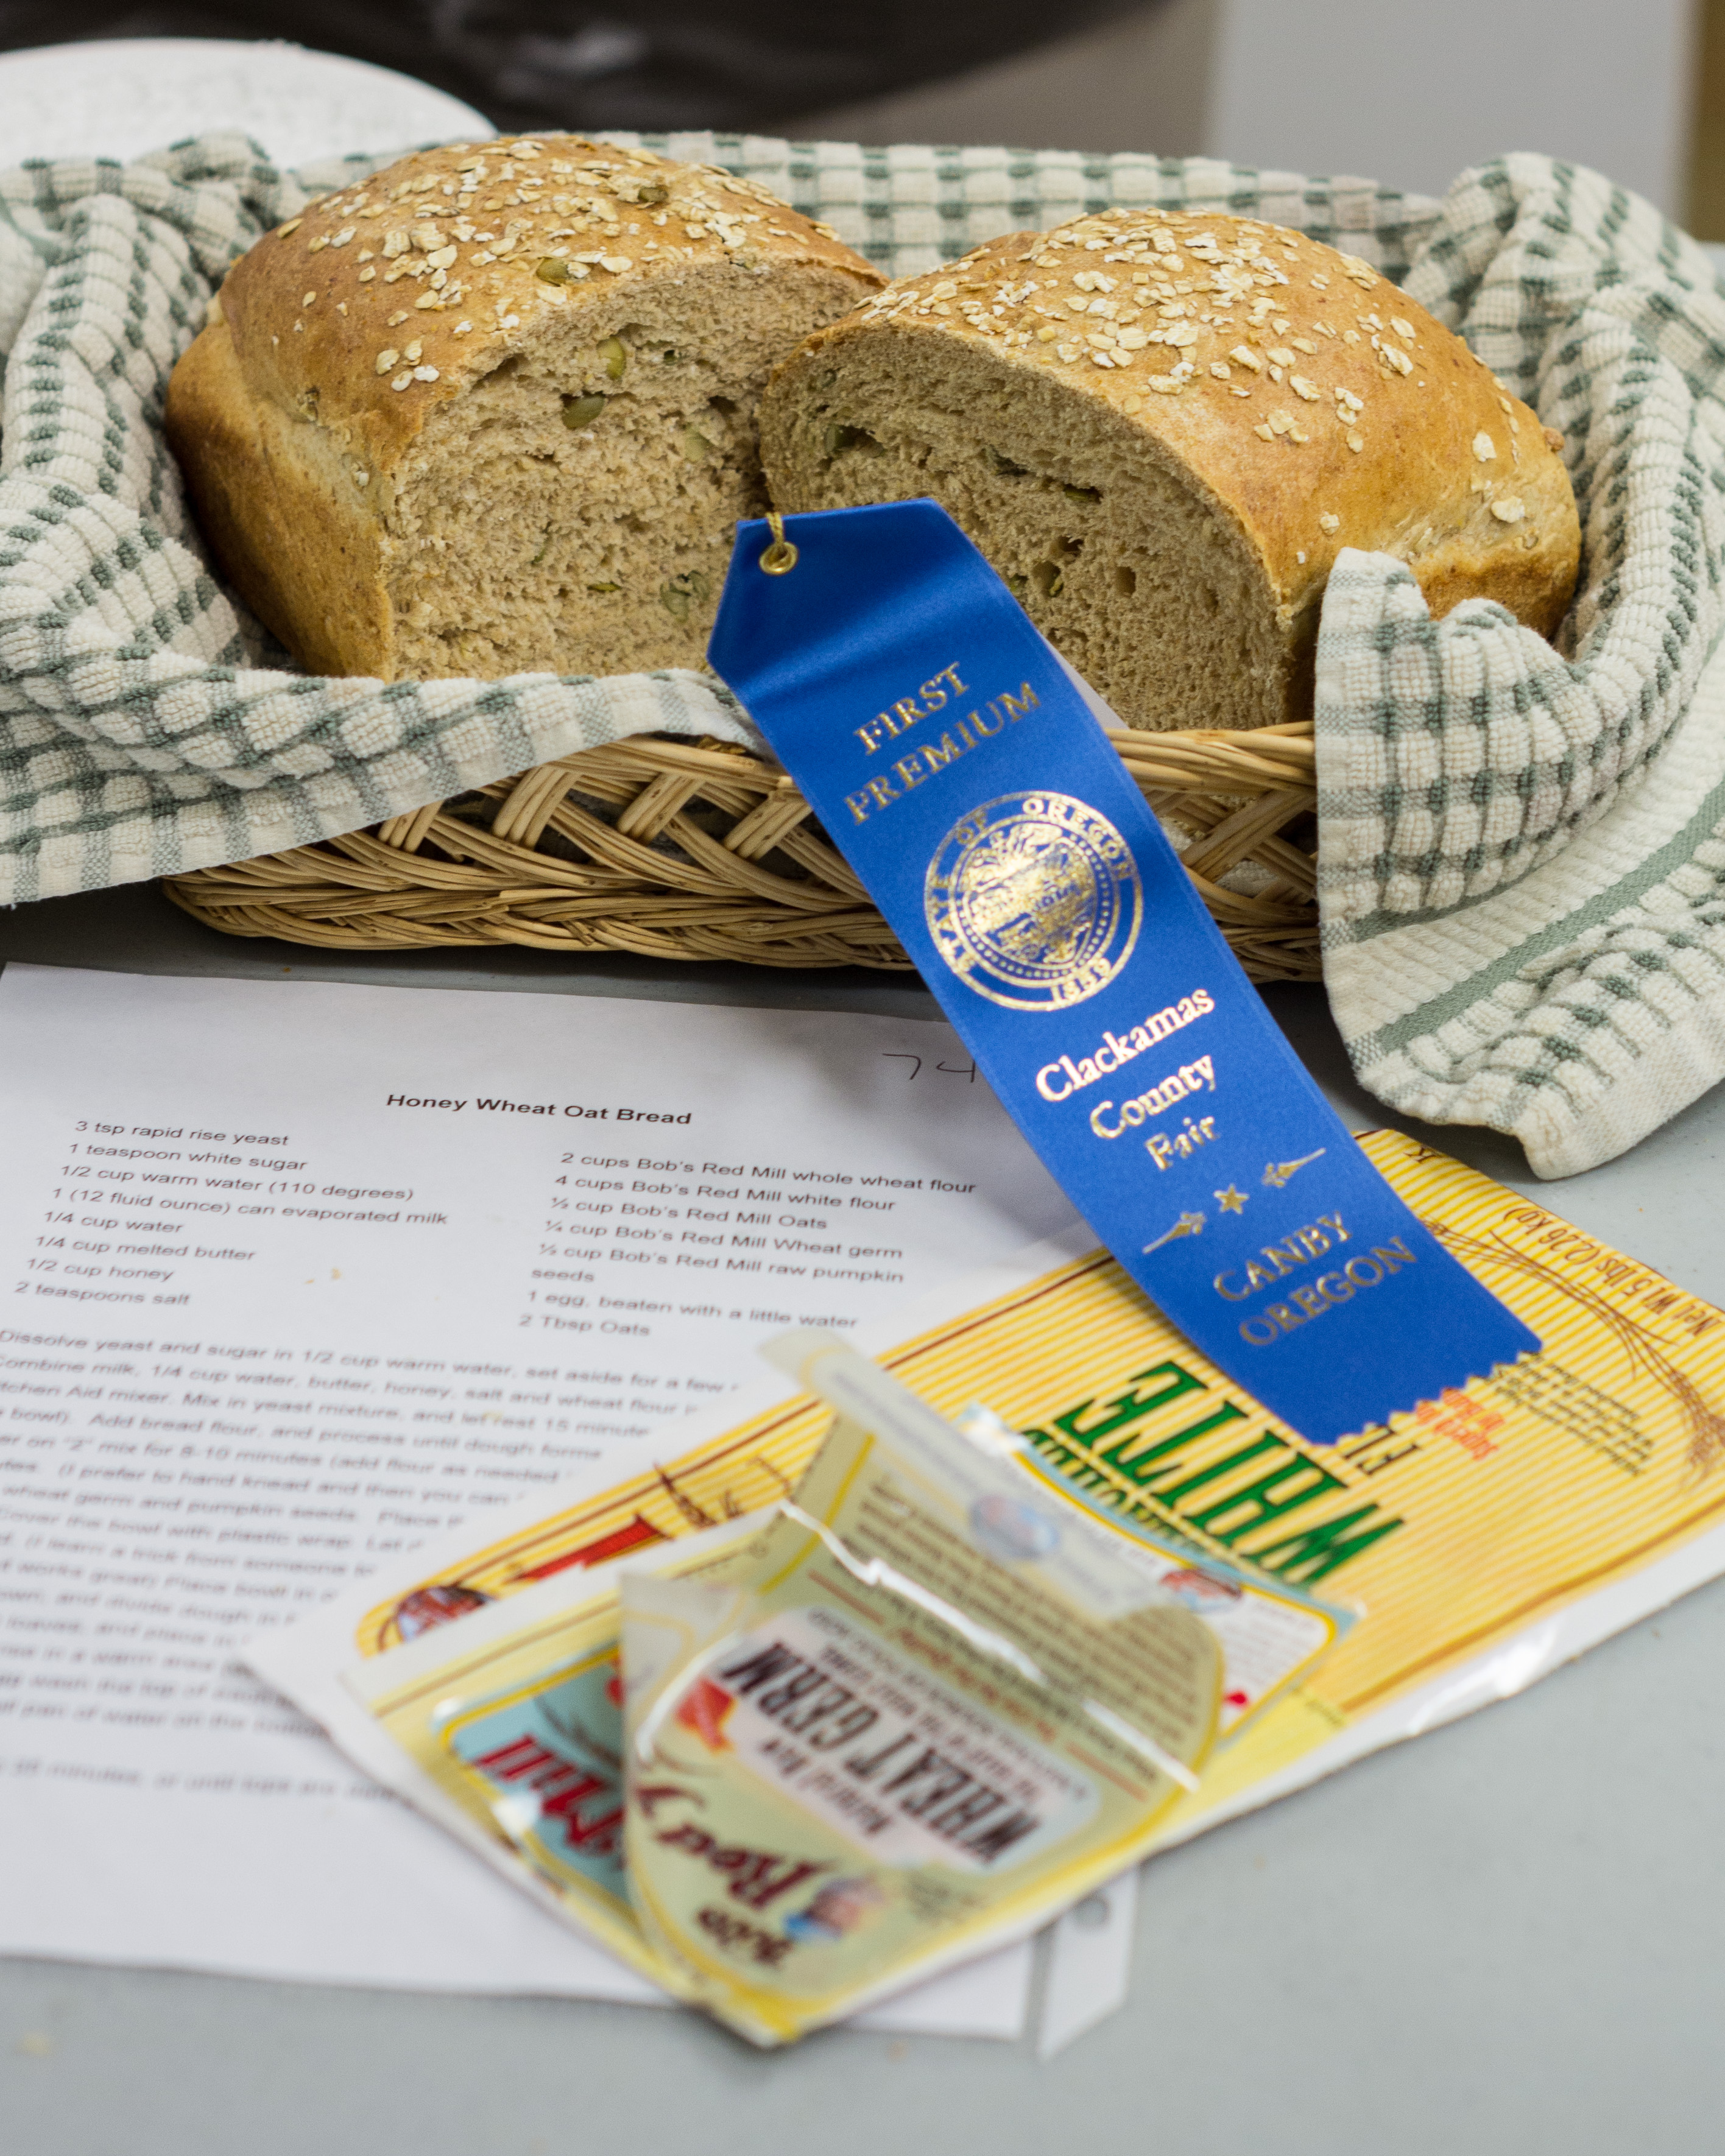 Blue Ribbon Honey Wheat Oat Bread